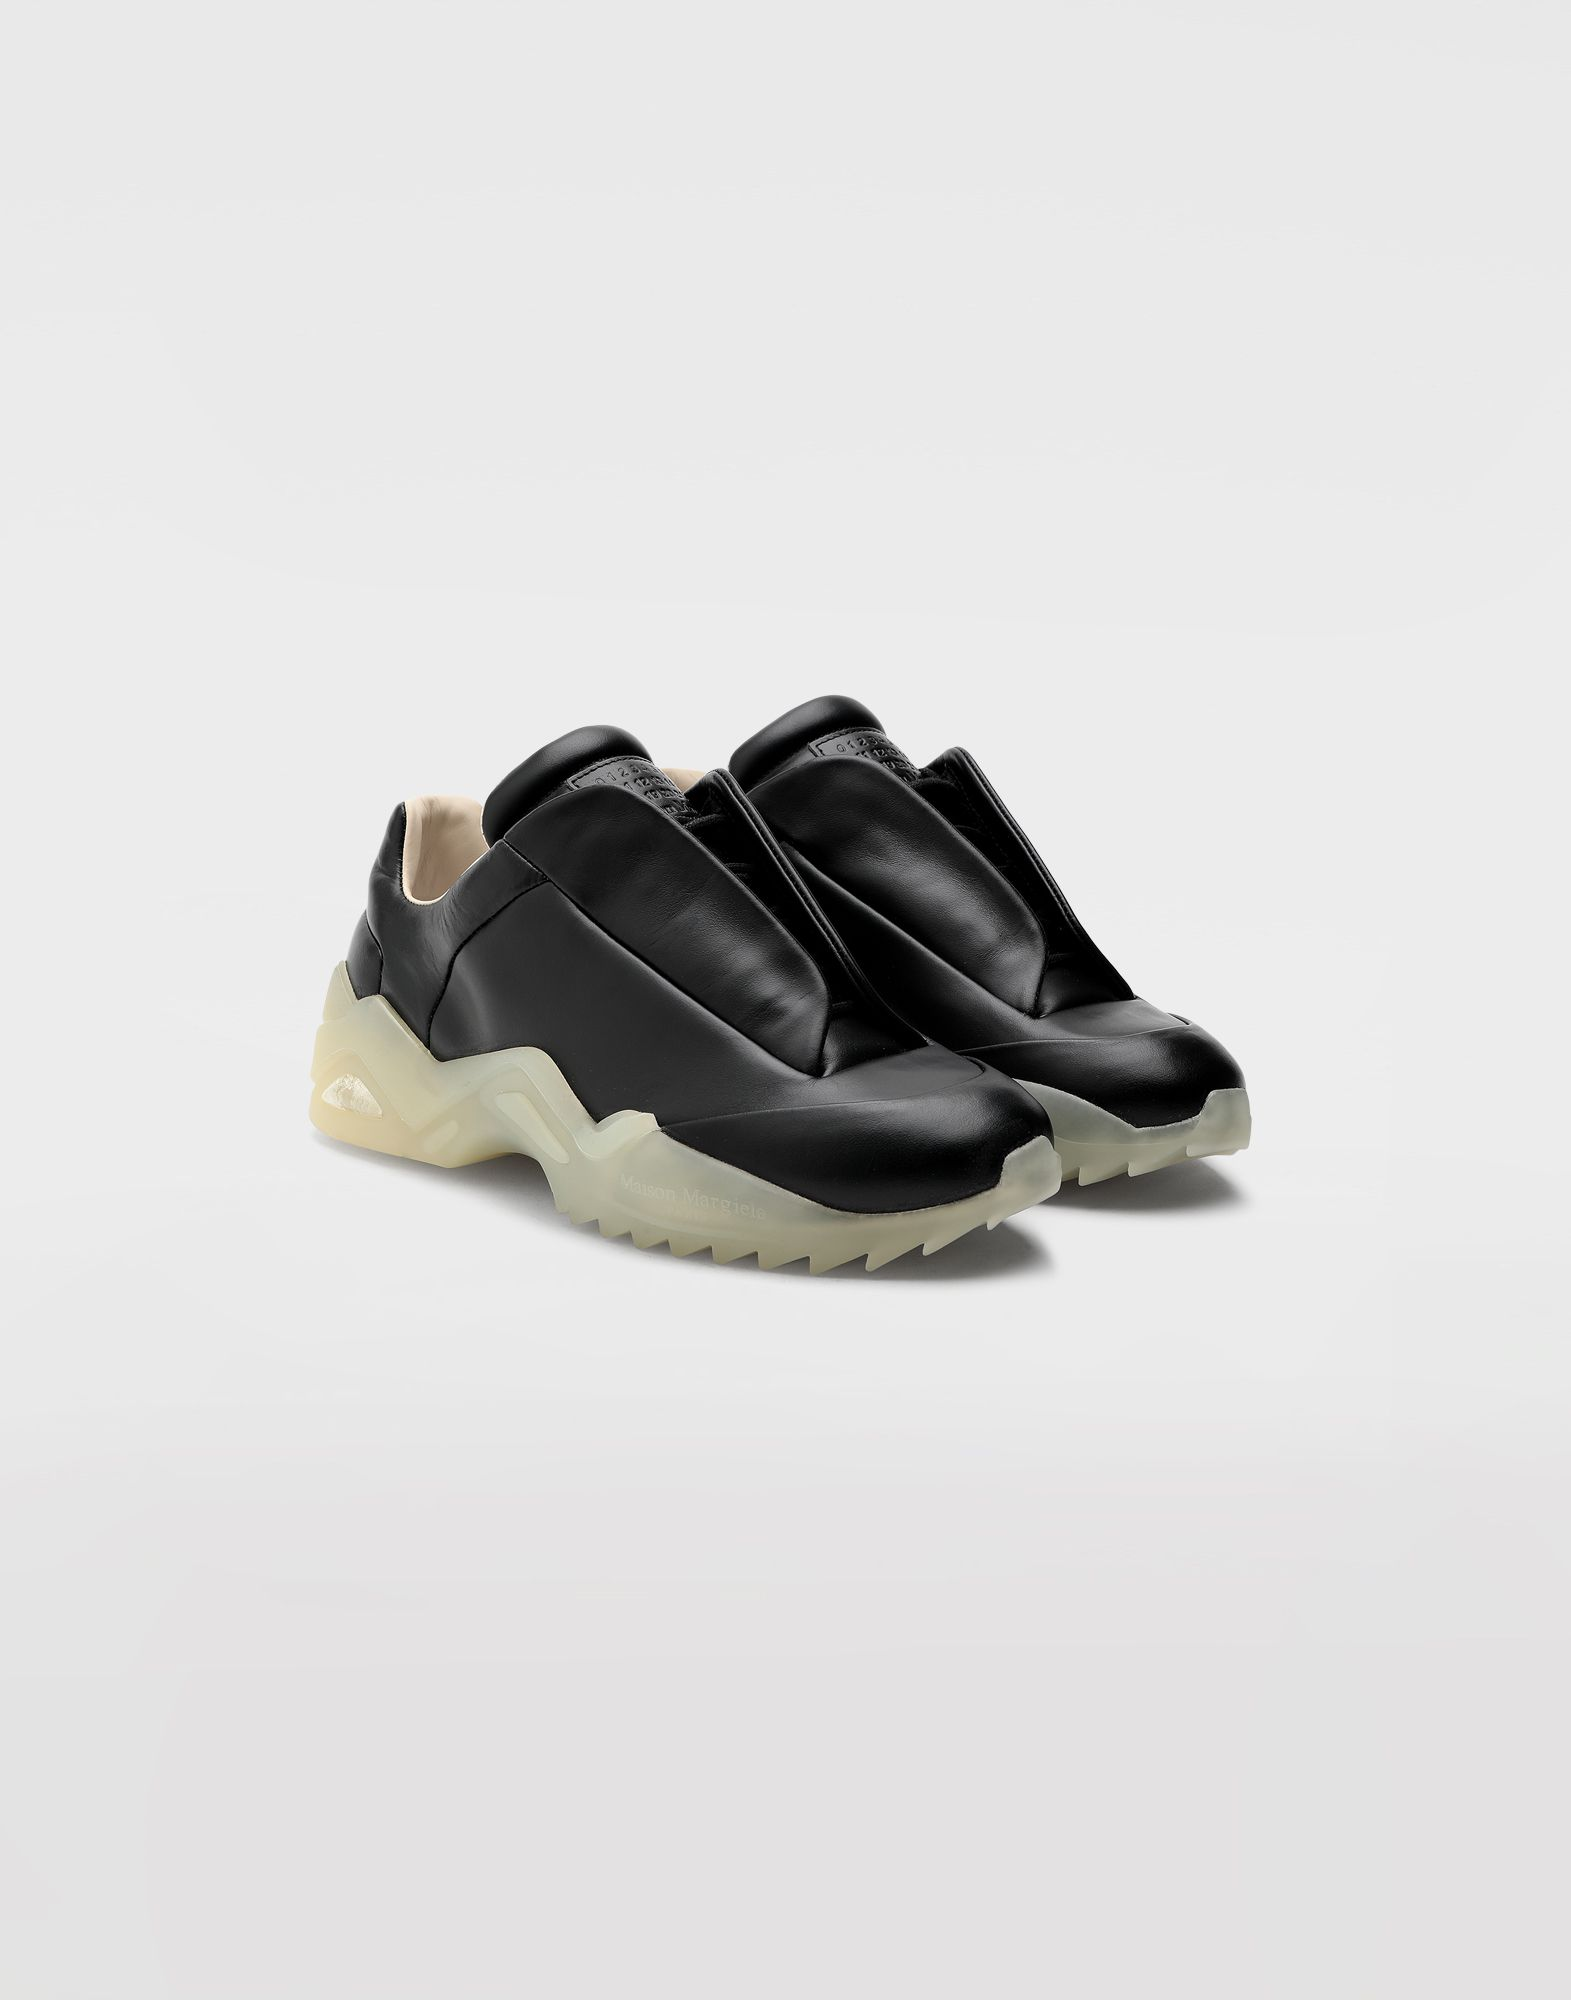 MAISON MARGIELA Future leather sneakers Sneakers Man d